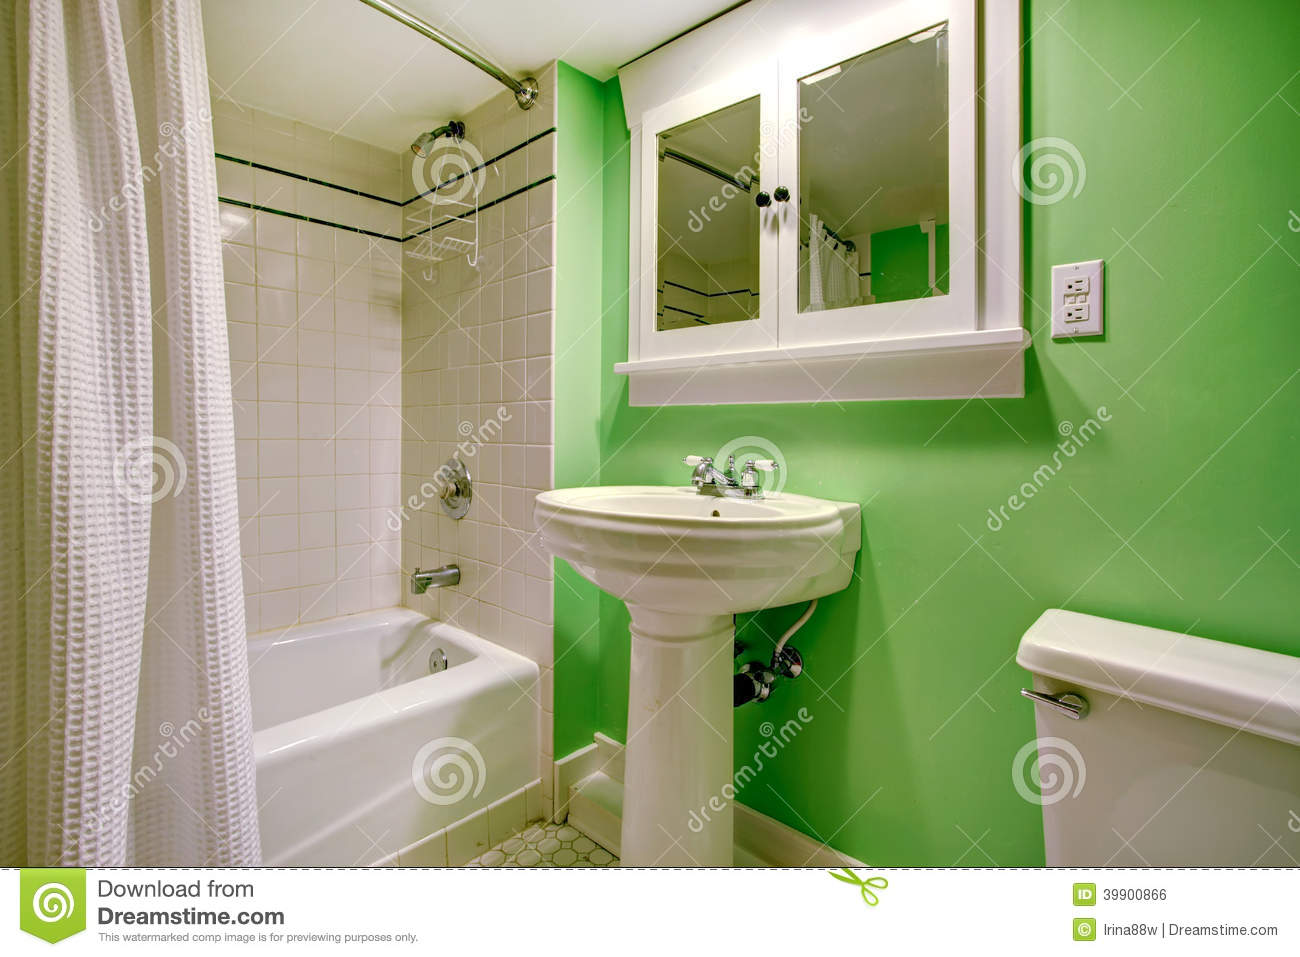 Green Bathroom With White Tile Trim Stock Photo Image 39900866